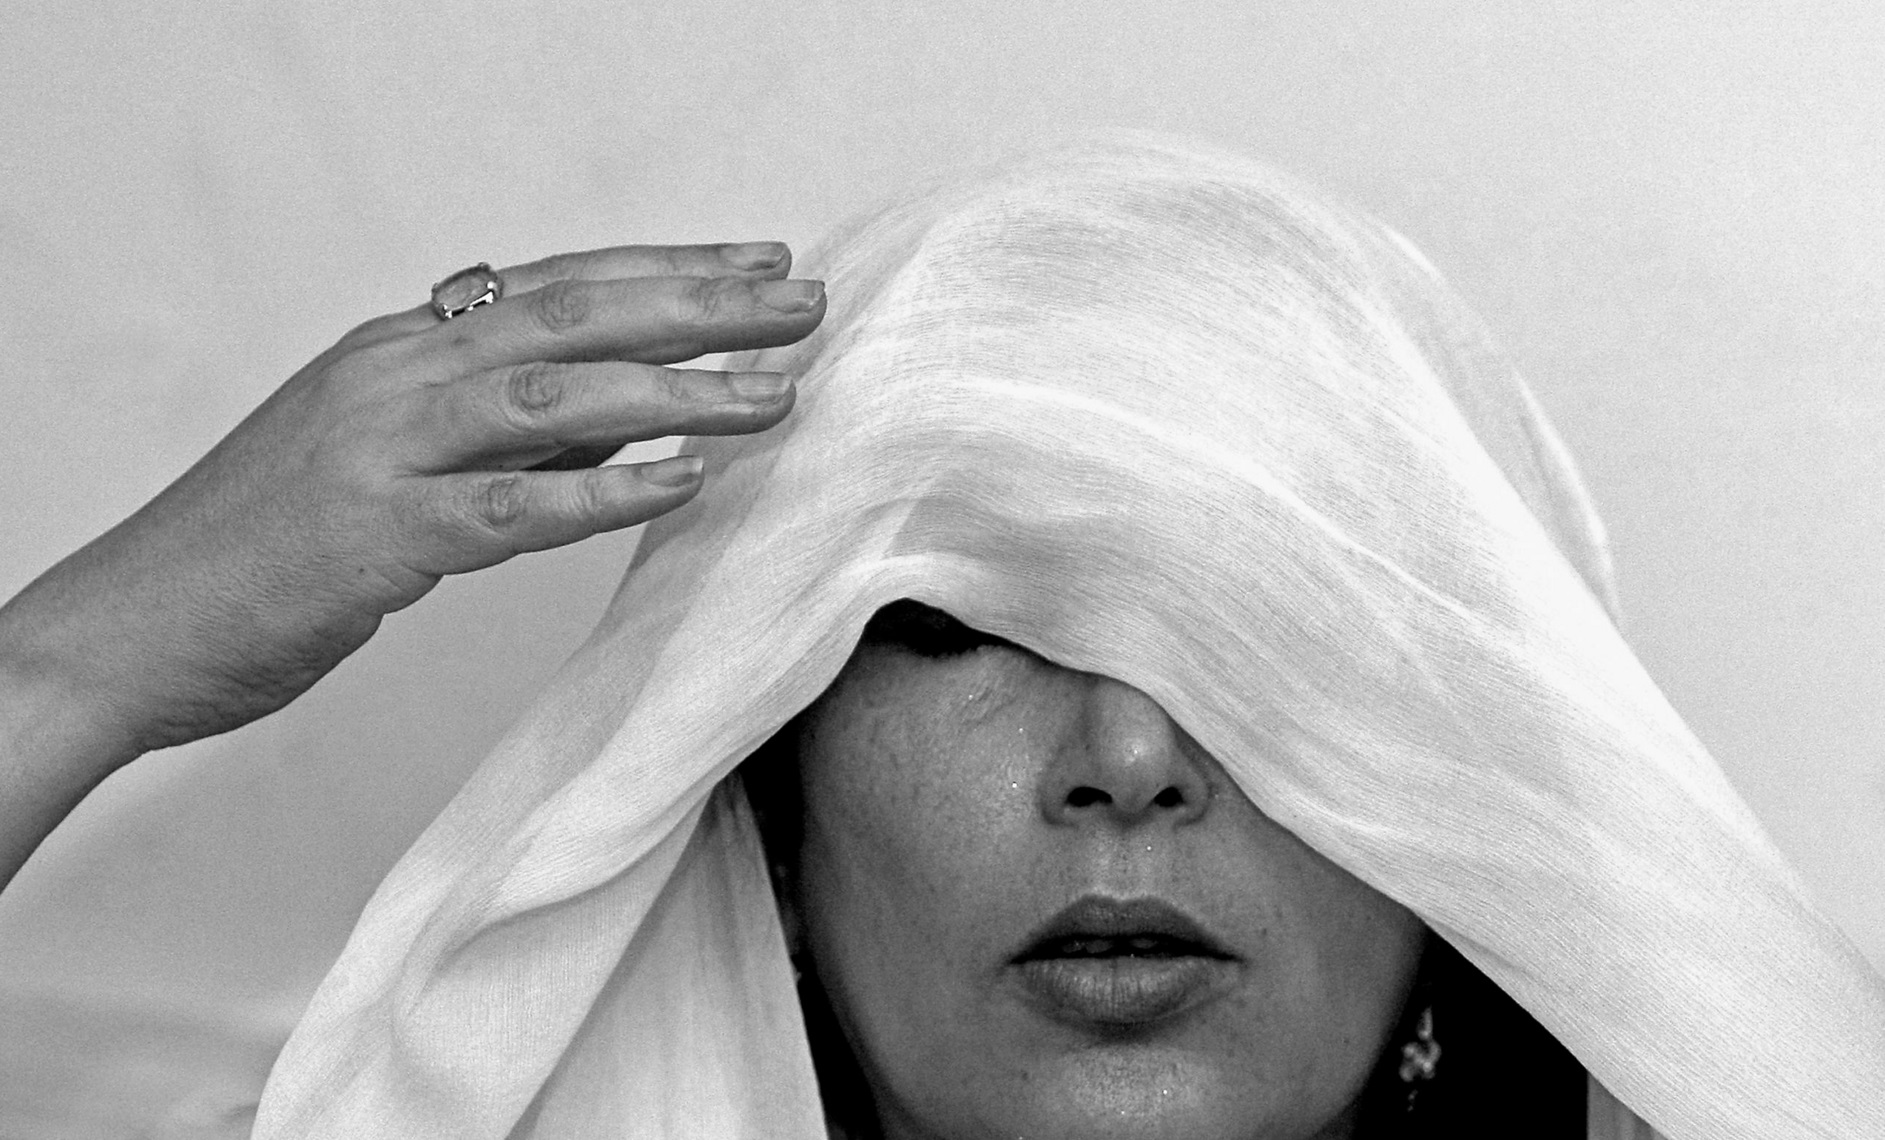 Former Pakistani premier Benazir Bhutto adjusts her head scarf during a press conference at her house in Karachi, Pakistan. October 21, 2007 © Daniel Berehulak/Getty Images